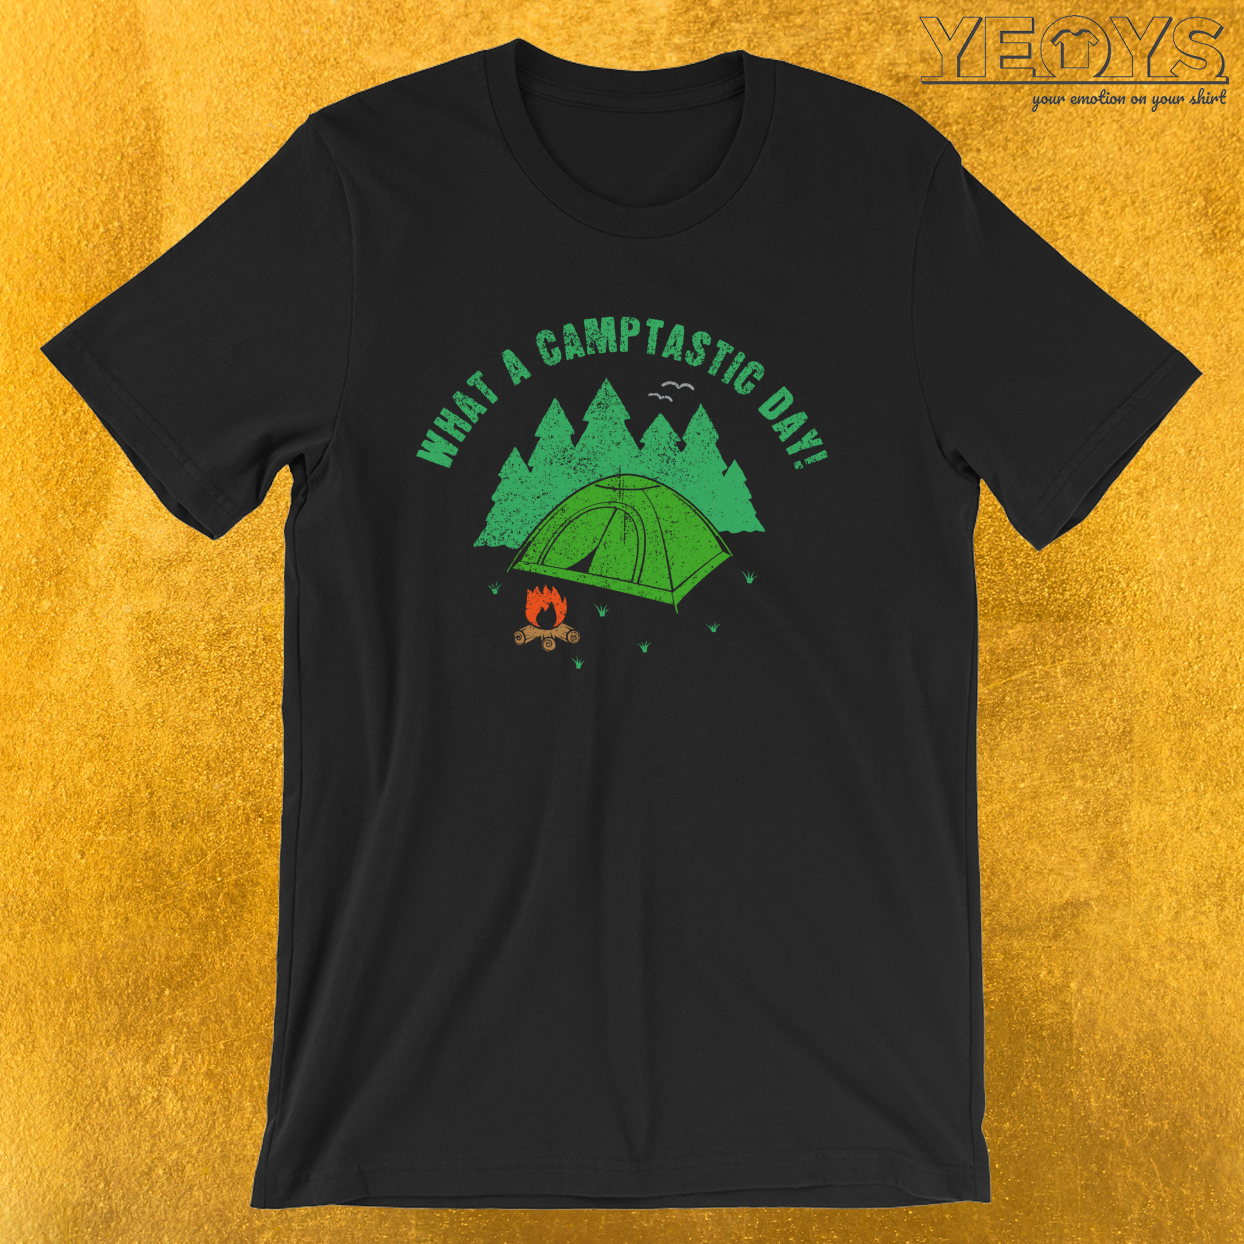 What A Camptastic Day – Funny Camping Quotes Tee